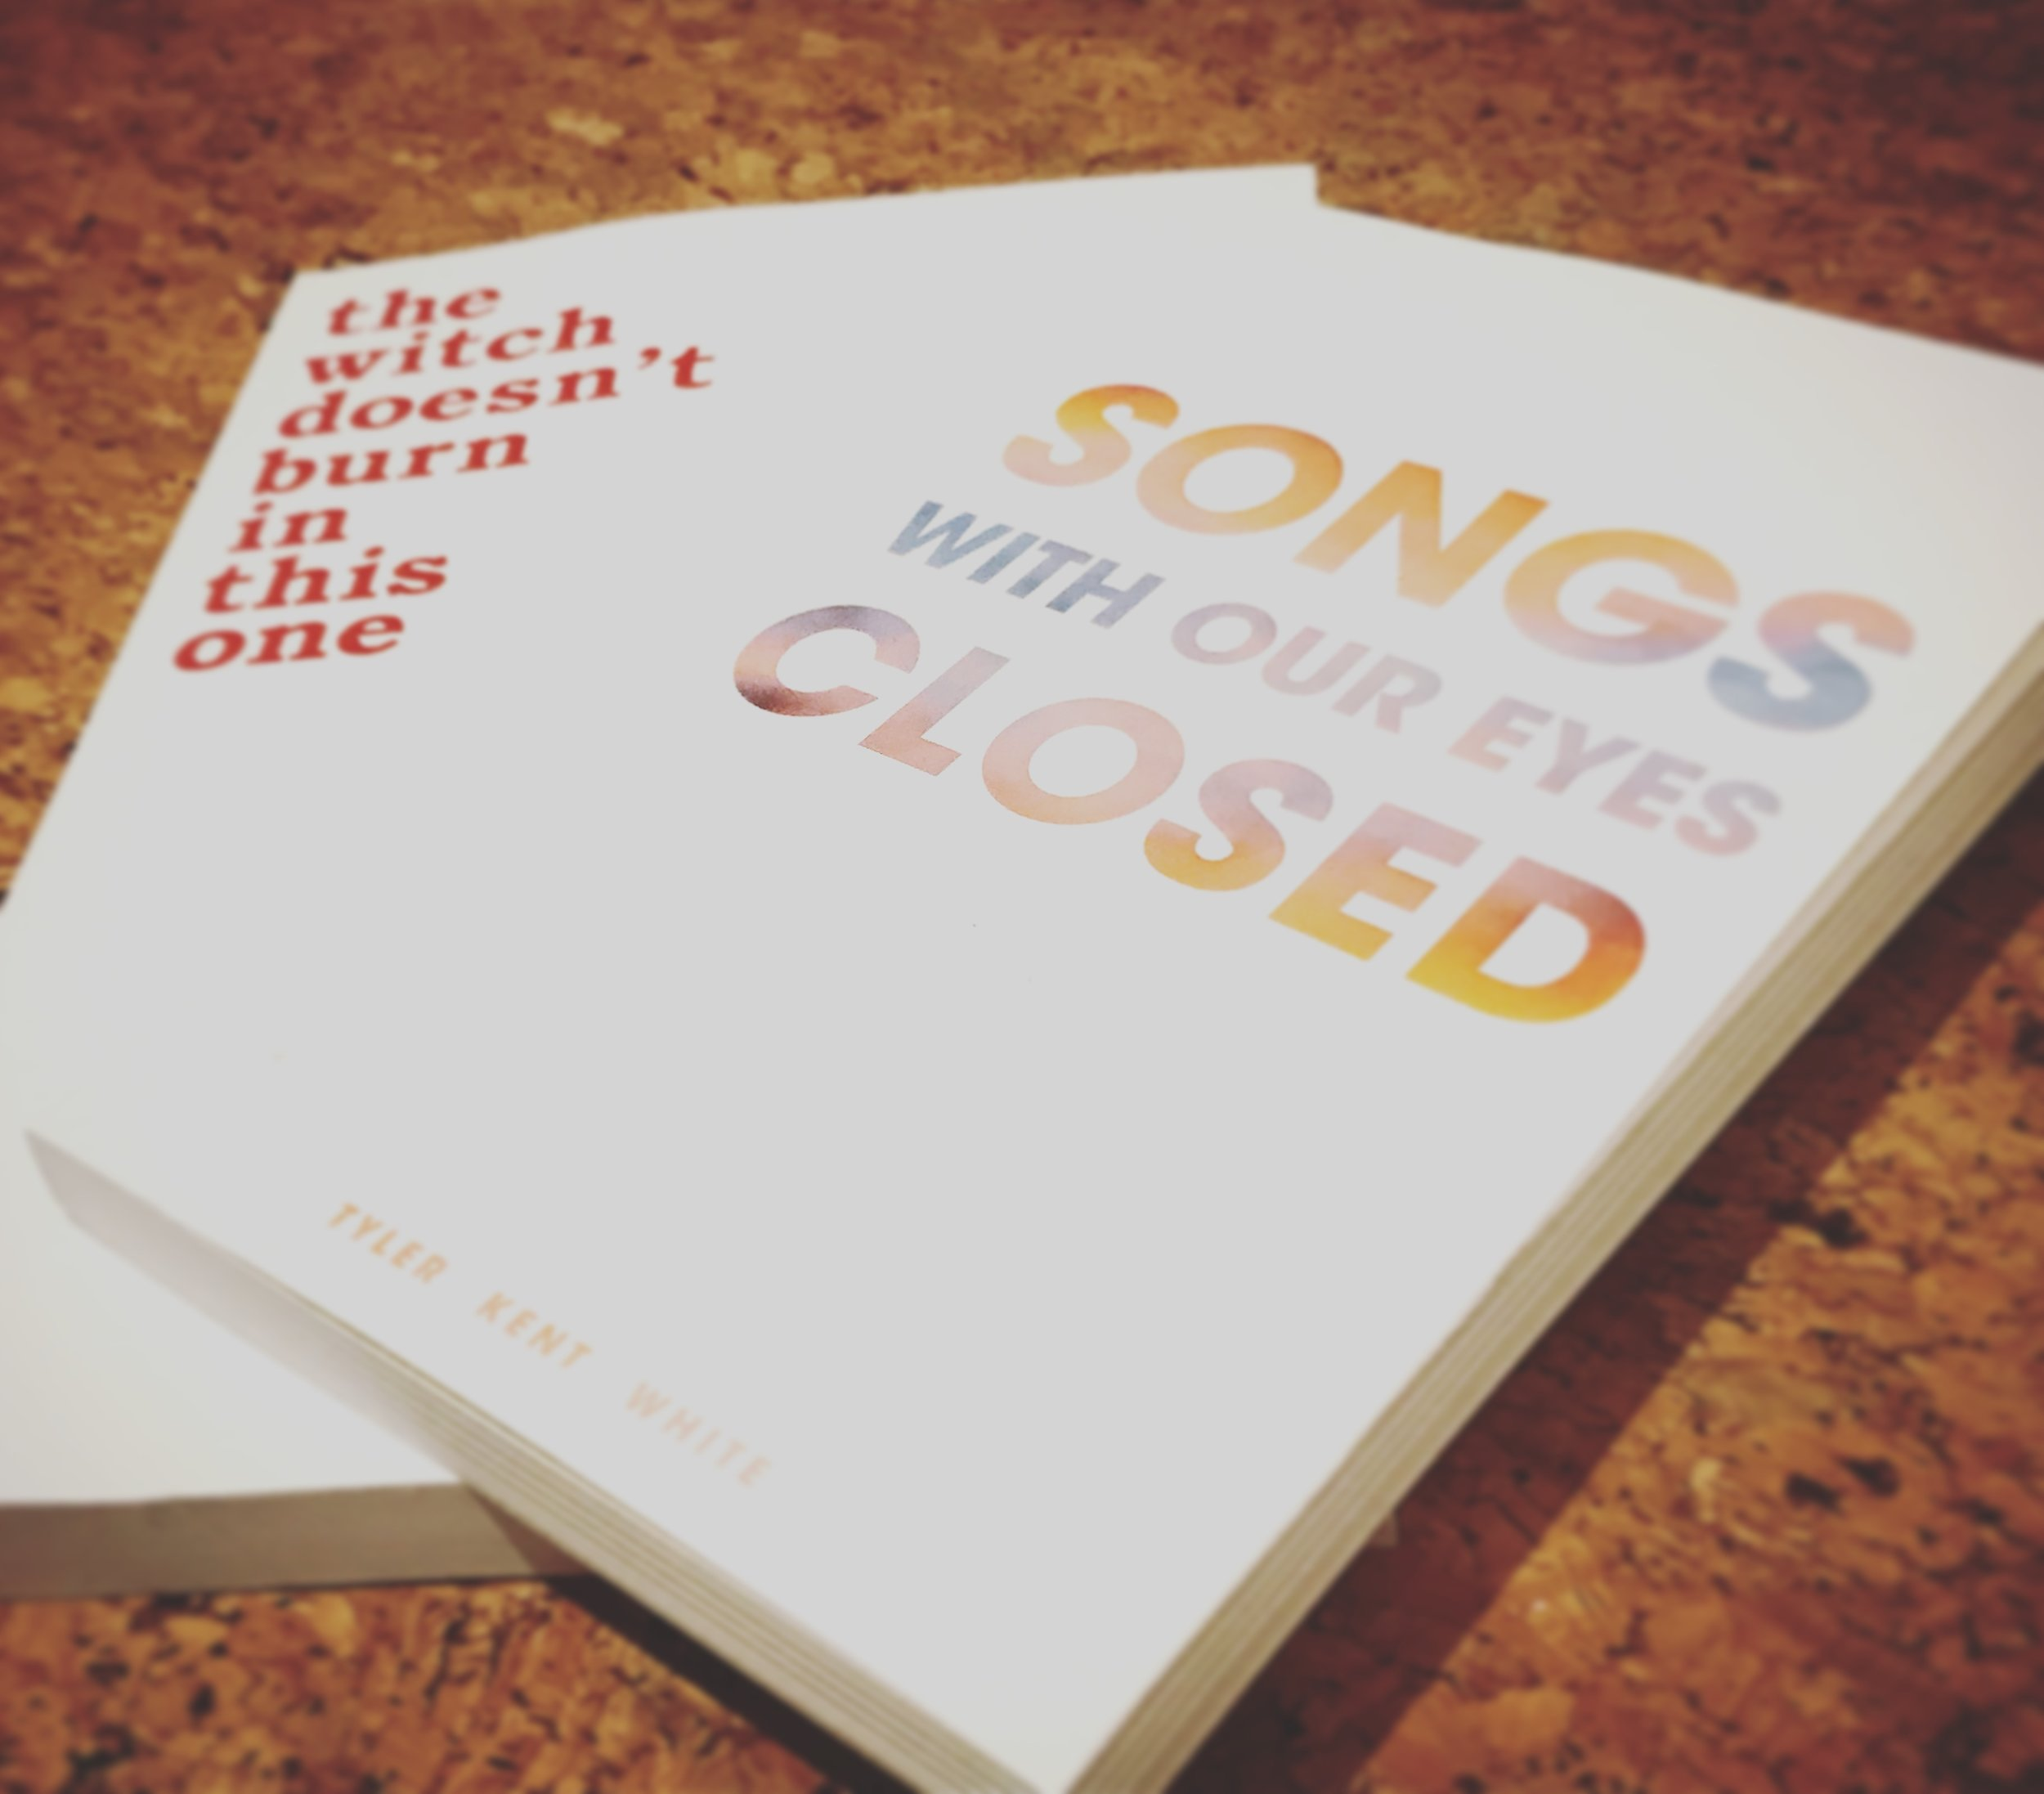 THE WITCH DOESN'T BURN IN THIS ONE: AMANDA LOVELACE / SONGS WITH OUR EYES CLOSED: TYLER KENT WHITE